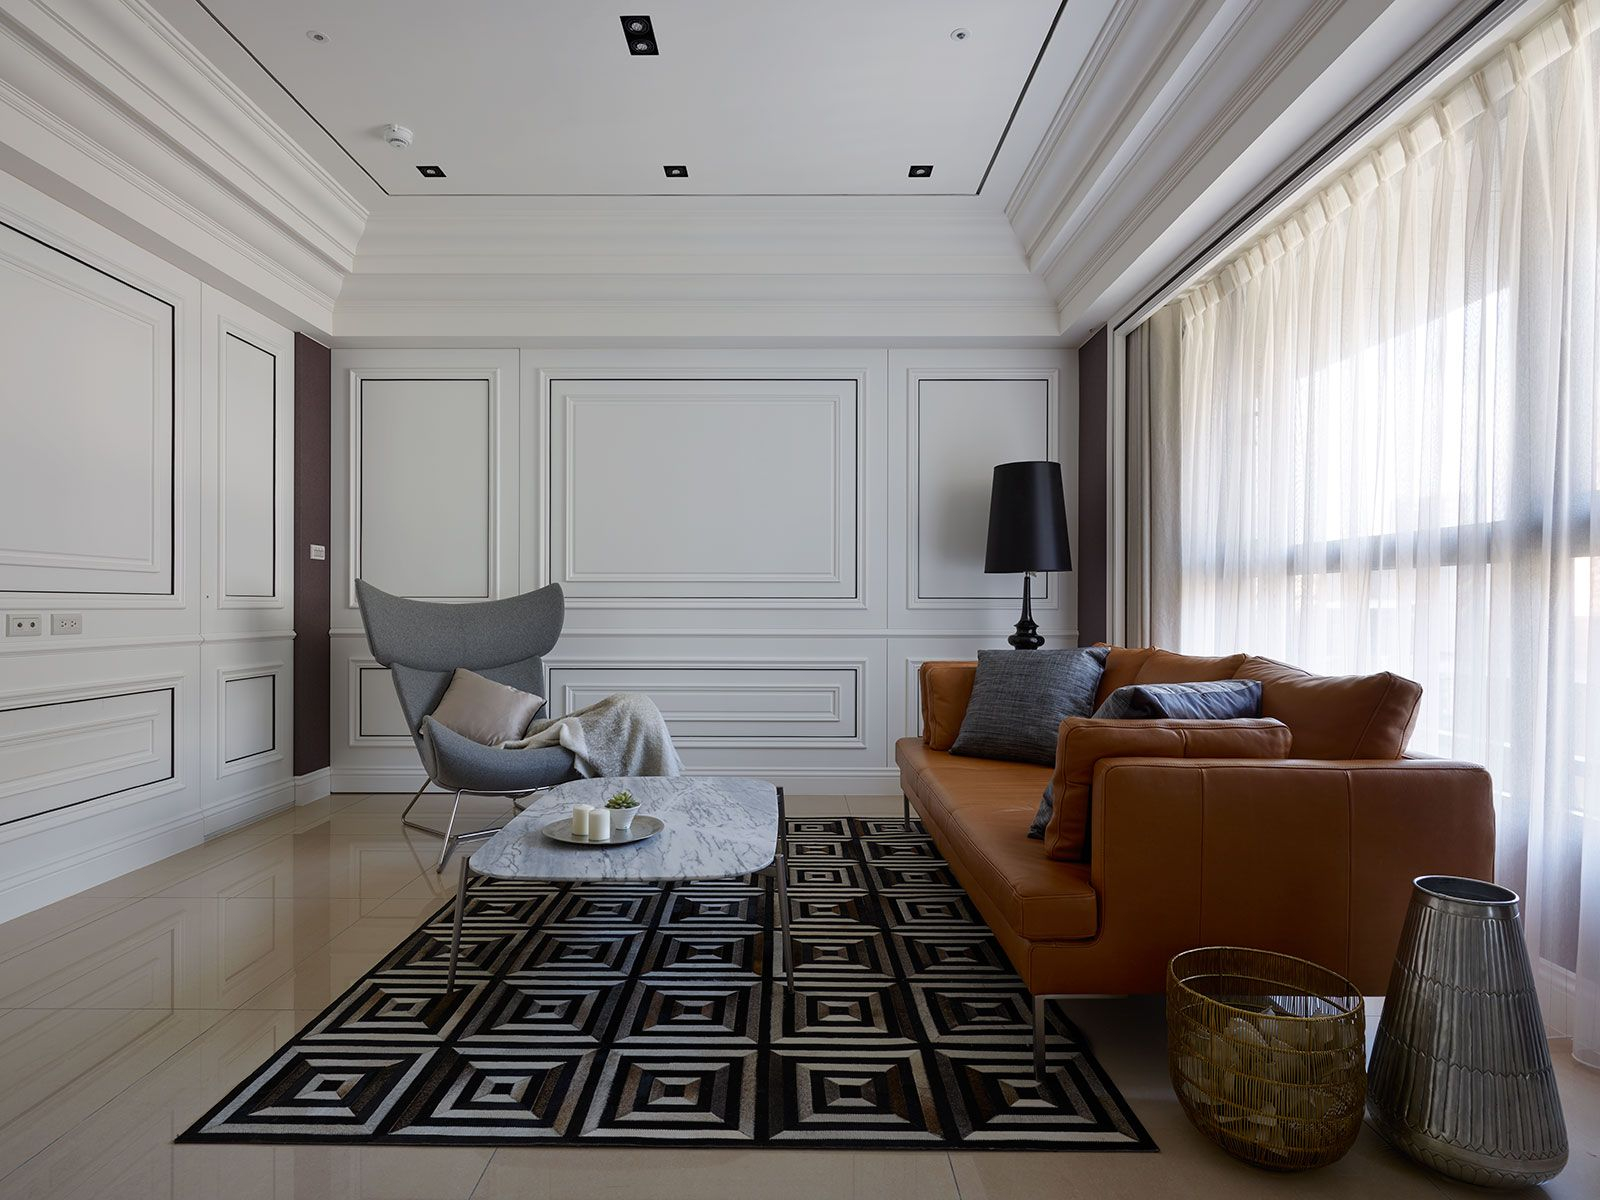 Nice Living Room Setting Featuring Boconcept Furniture Boconcept pertaining to Modern Living Room Settings